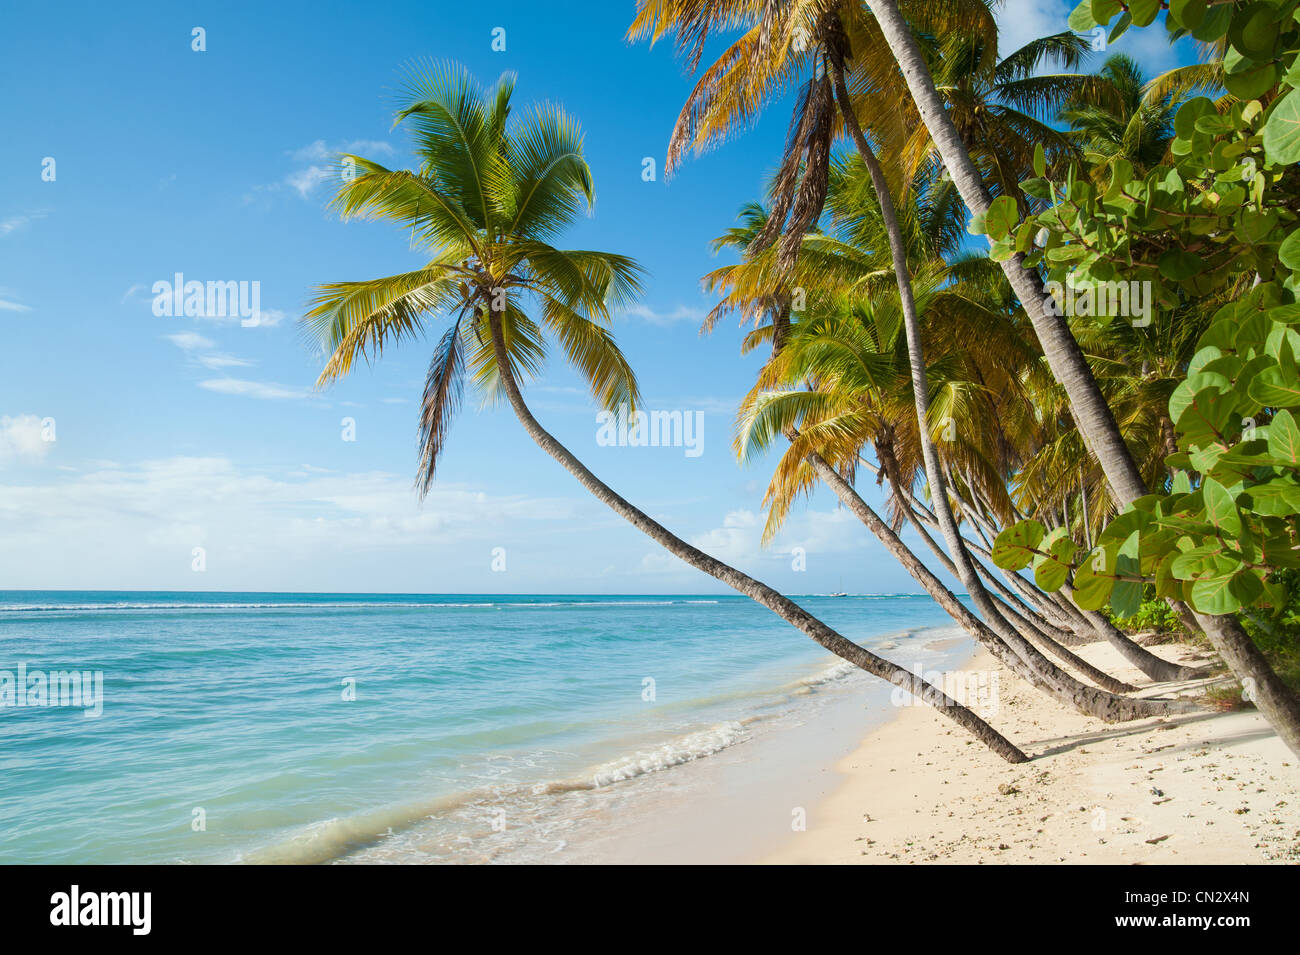 Beach, sea and palm trees, Pigeon Point, Tobago - Stock Image